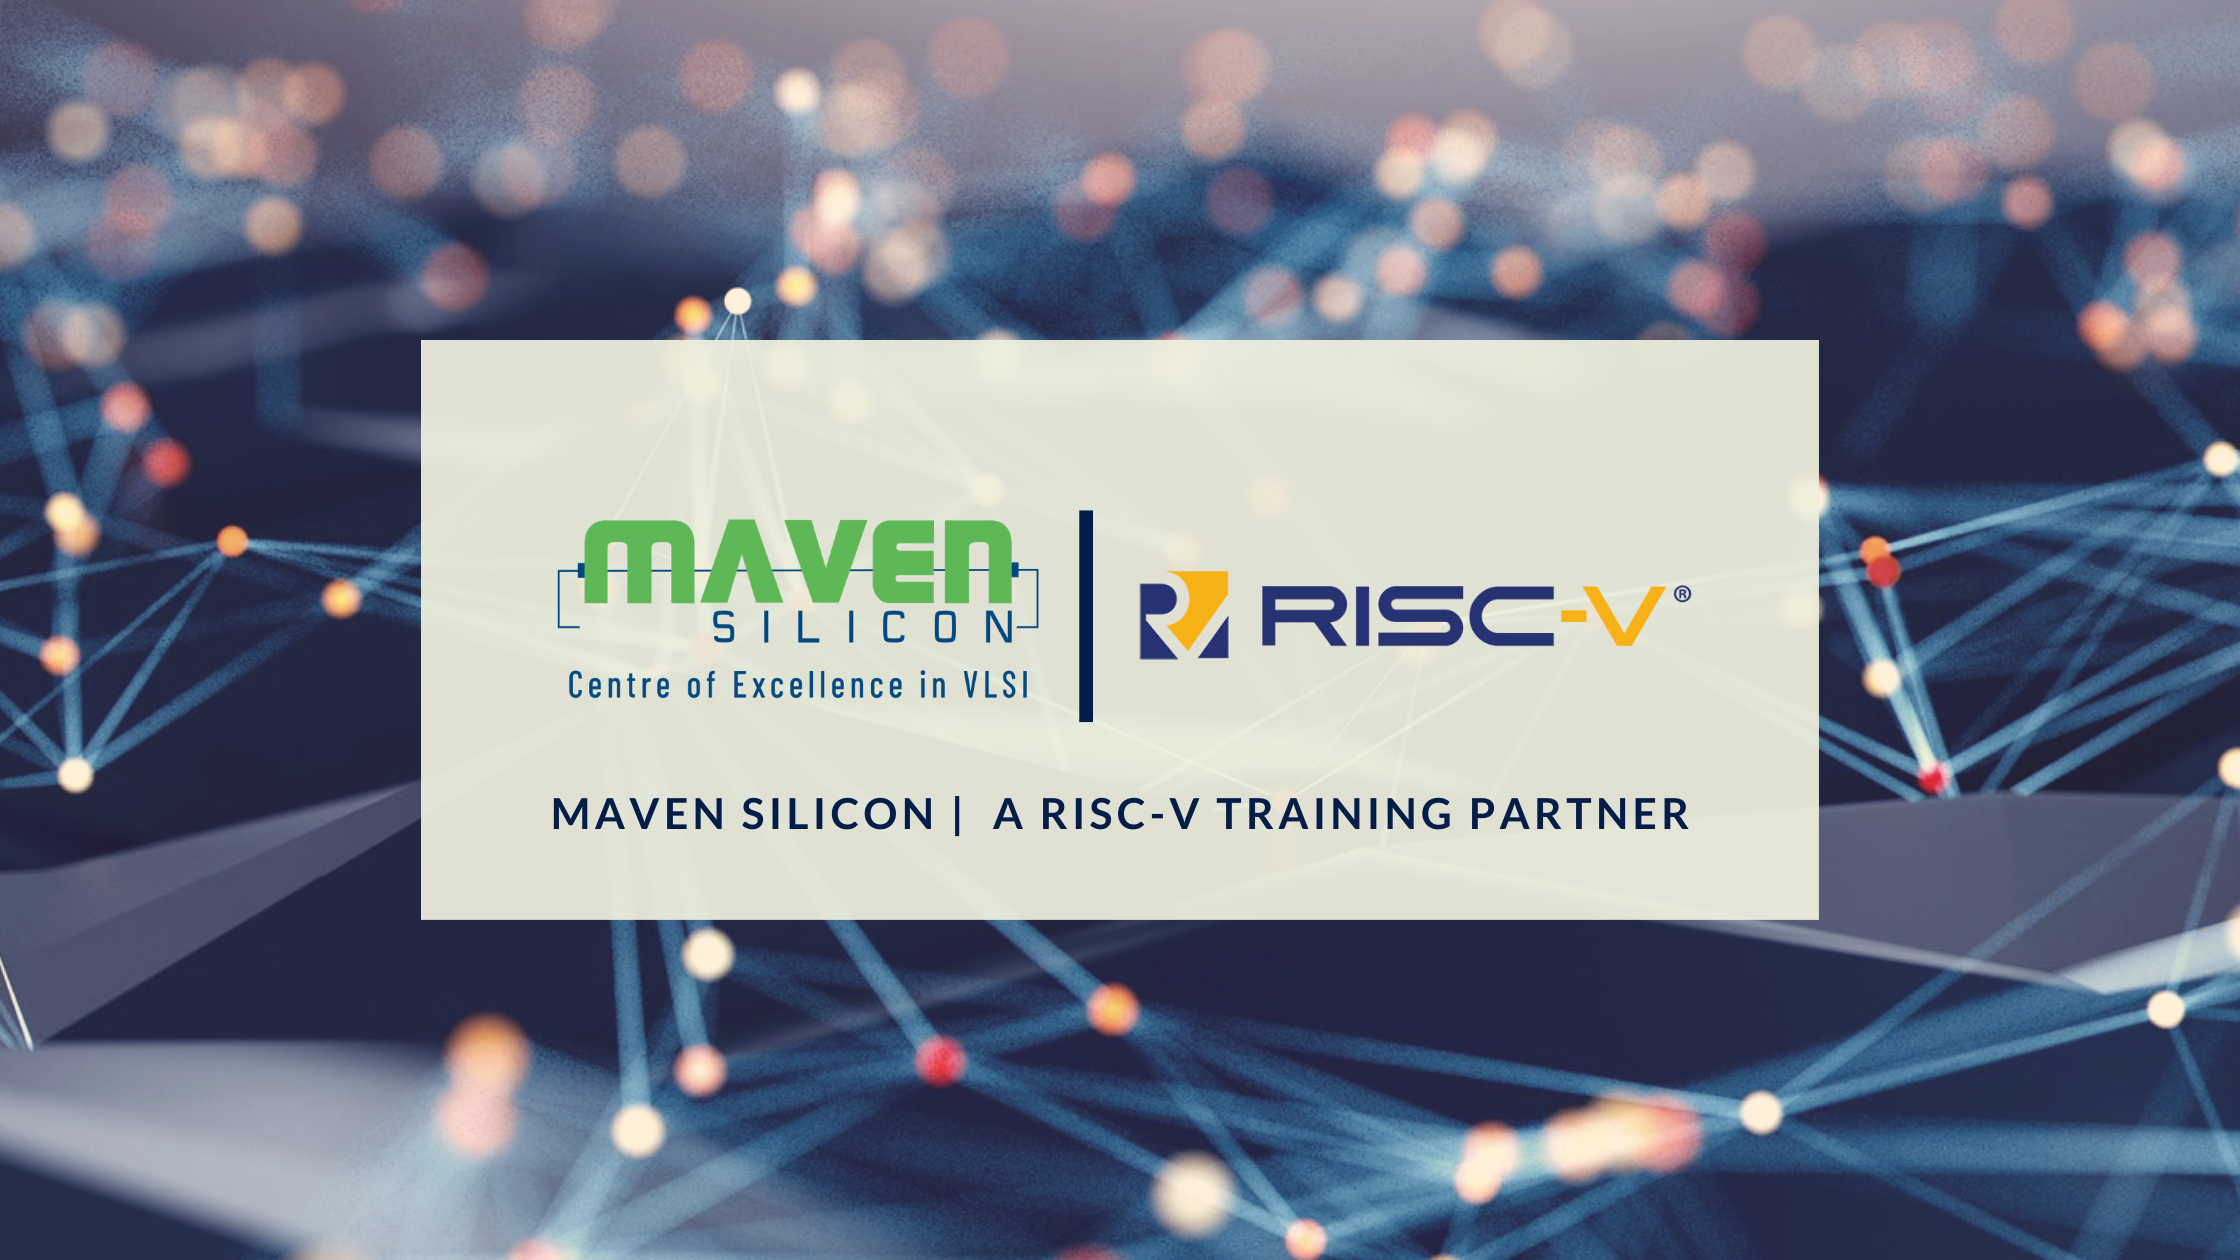 Maven Silicon – a RISC-V Training Partner